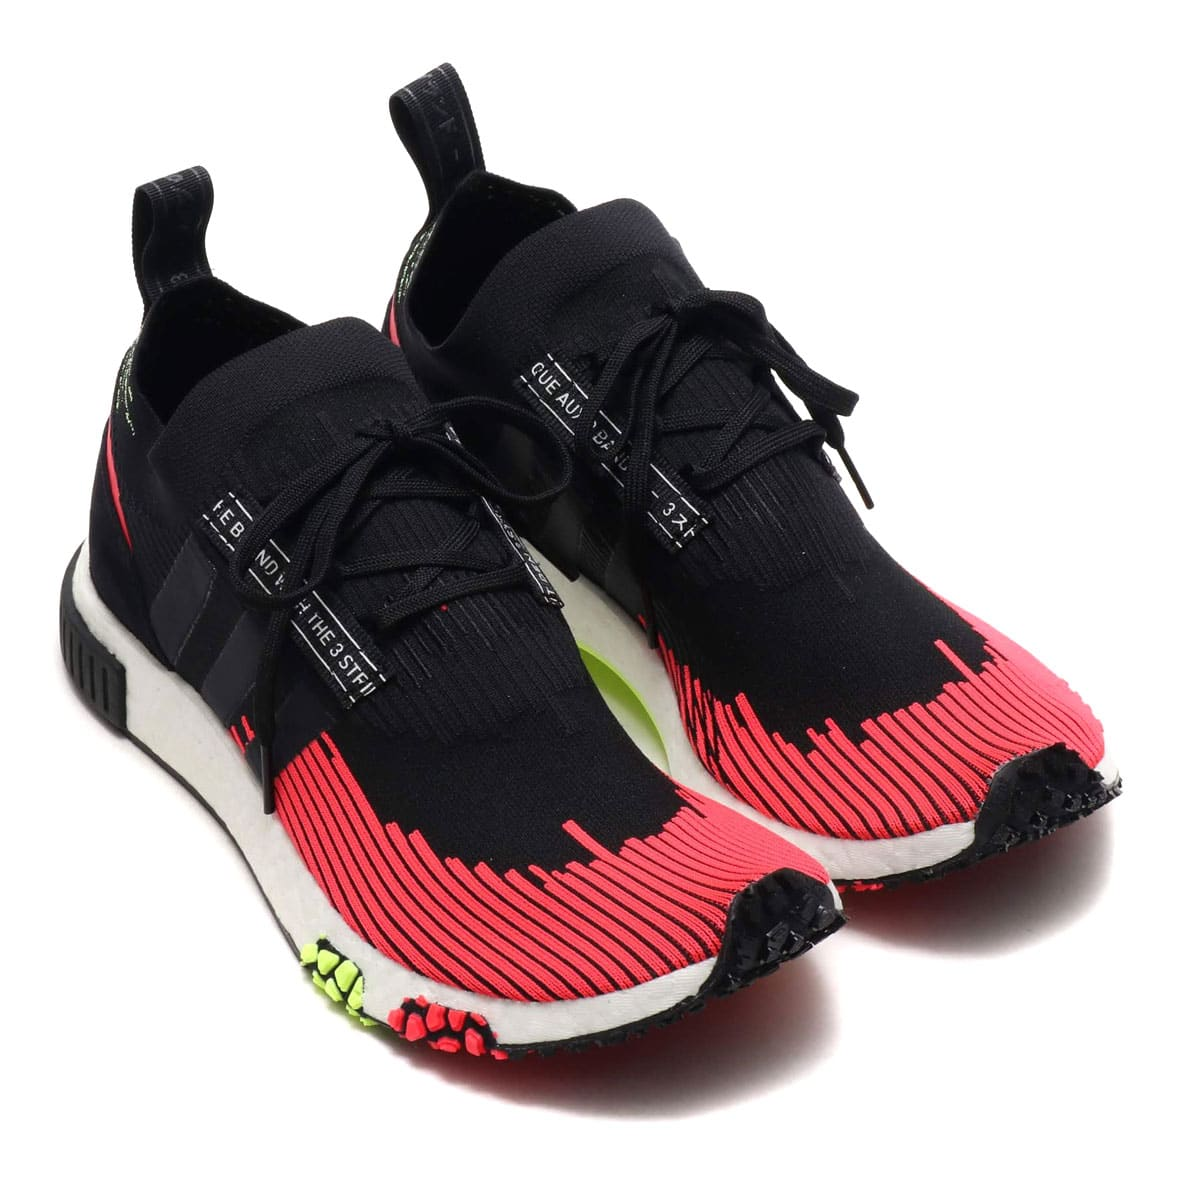 adidas Originals NMD_RACER PK CORE BLACK/CORE BLACK/SHOCK RED 19SS-I_photo_large